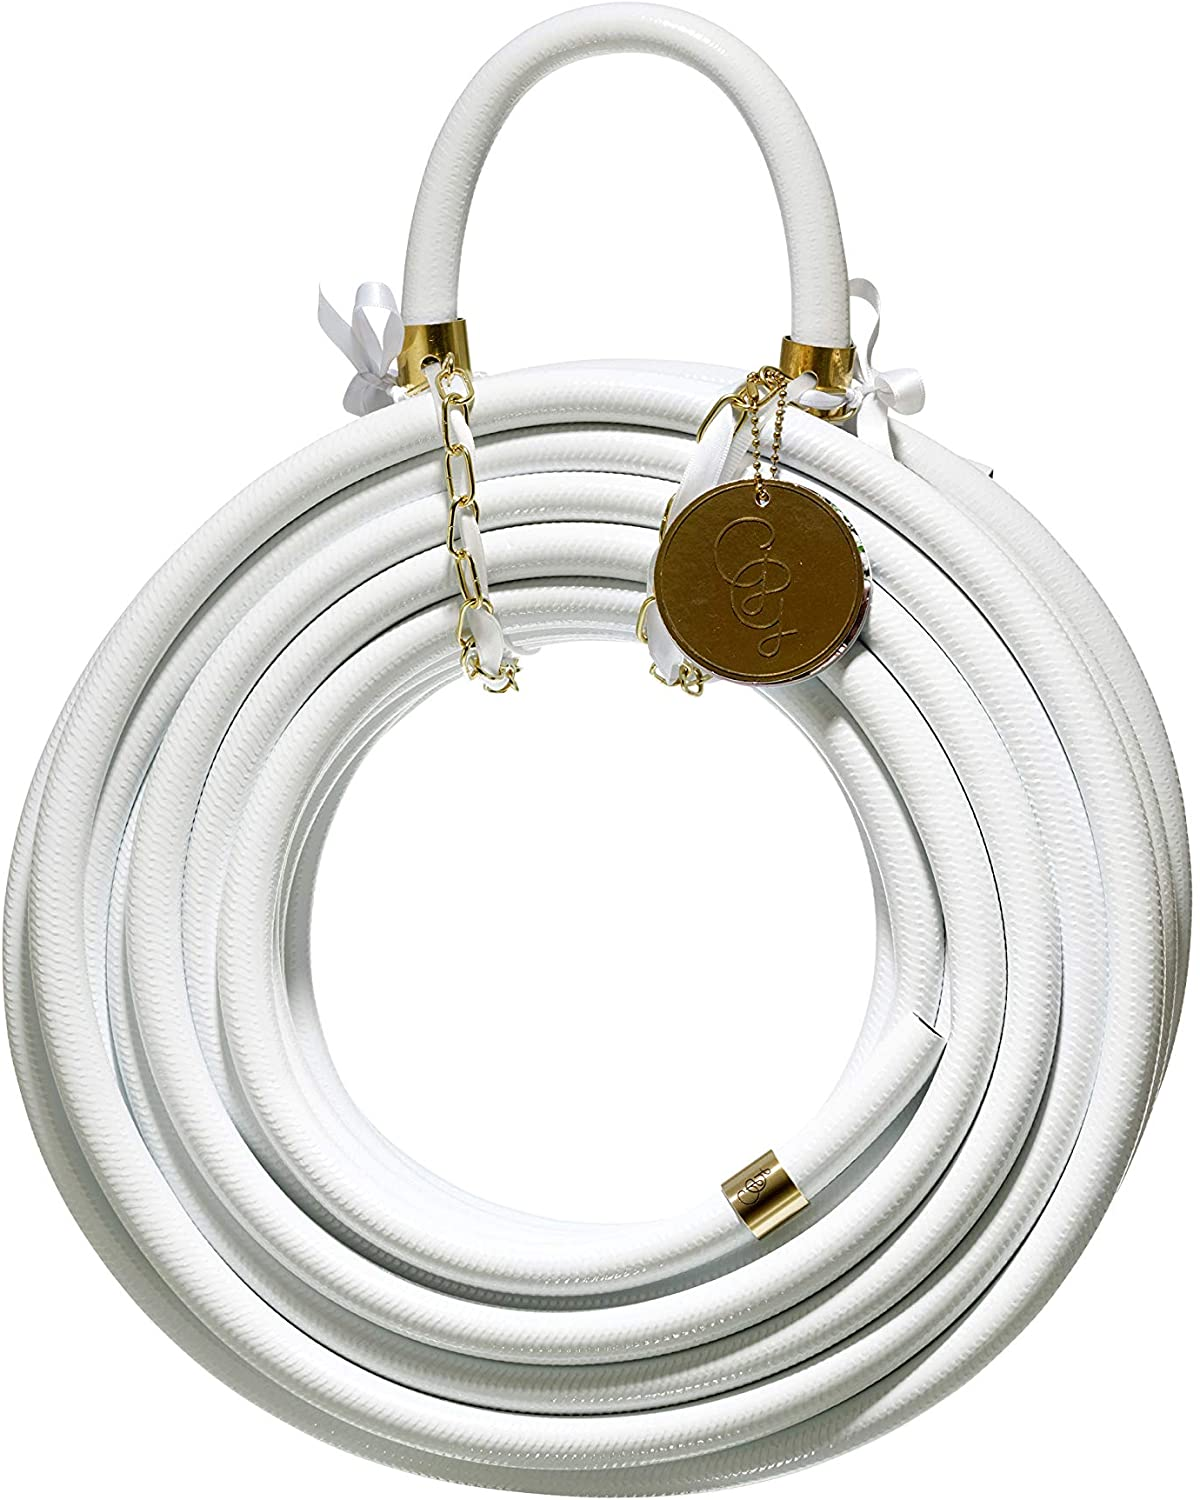 White Snake Garden Glory Hose Kit 3